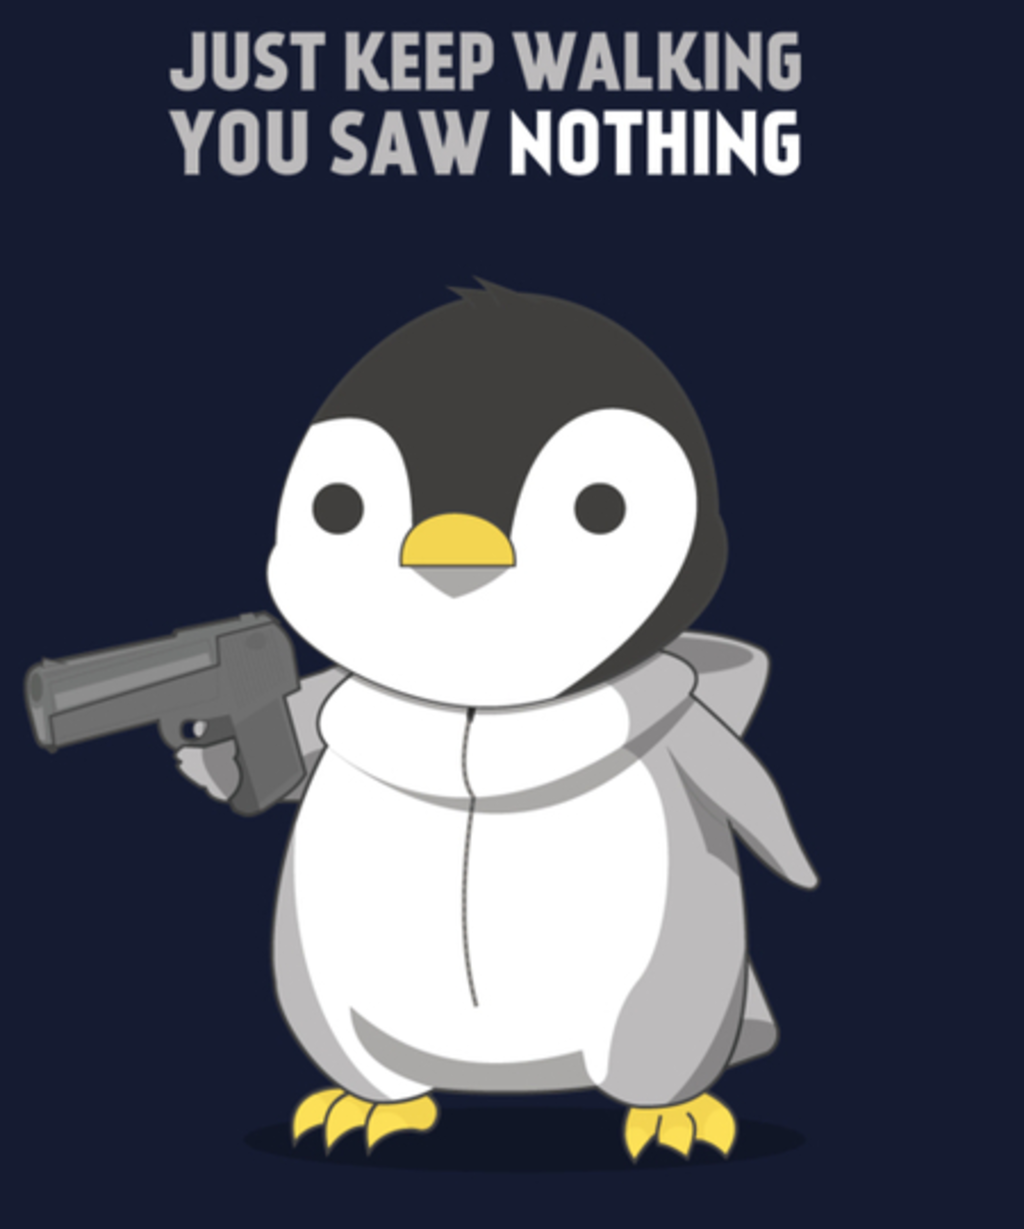 Qwertee: You saw nothing